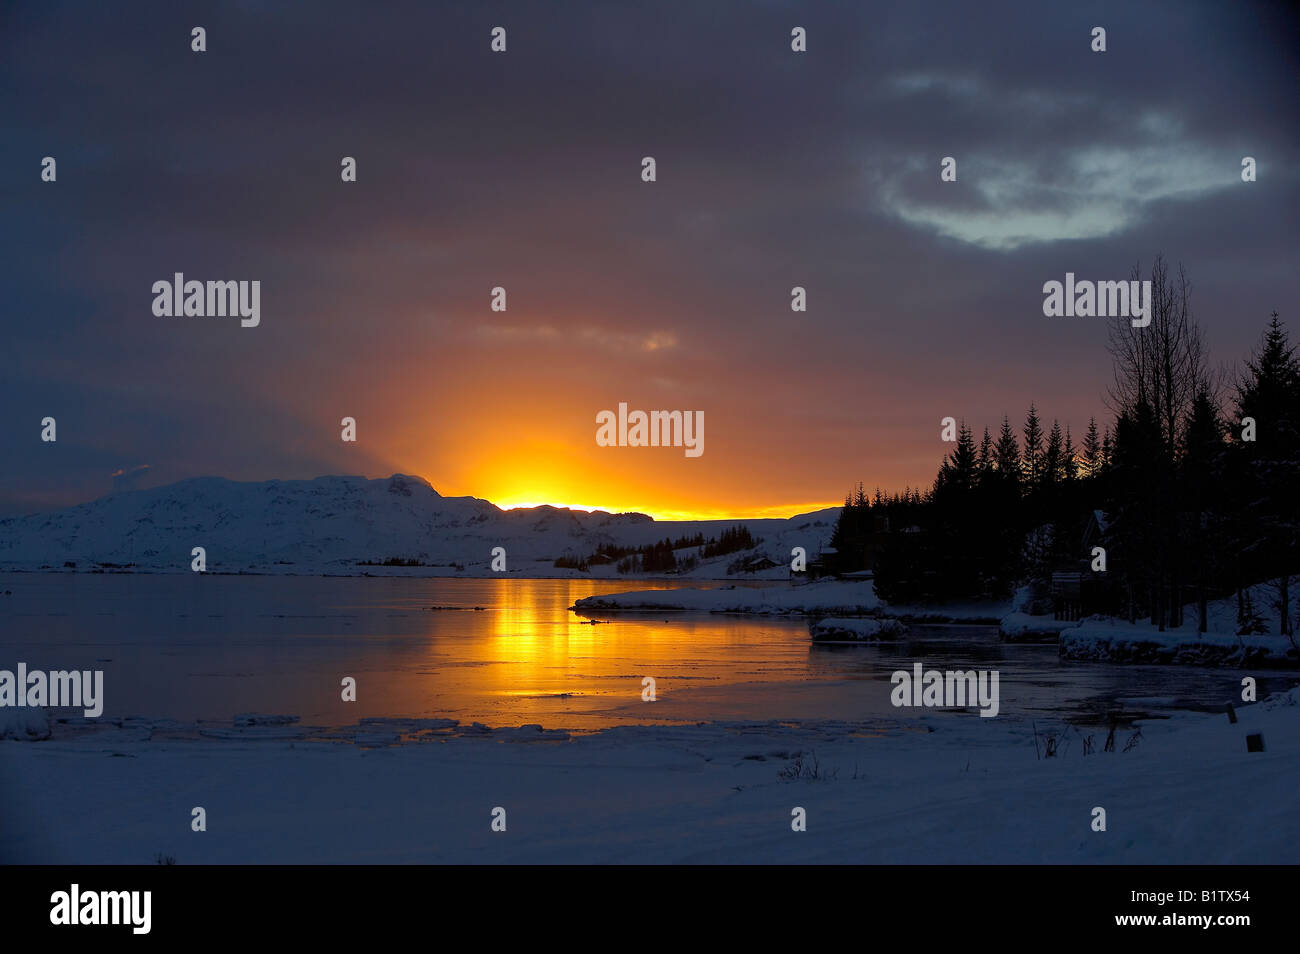 Sunset at Thingvellir National Park, Lake Thingvellirvatn, Iceland - Stock Image